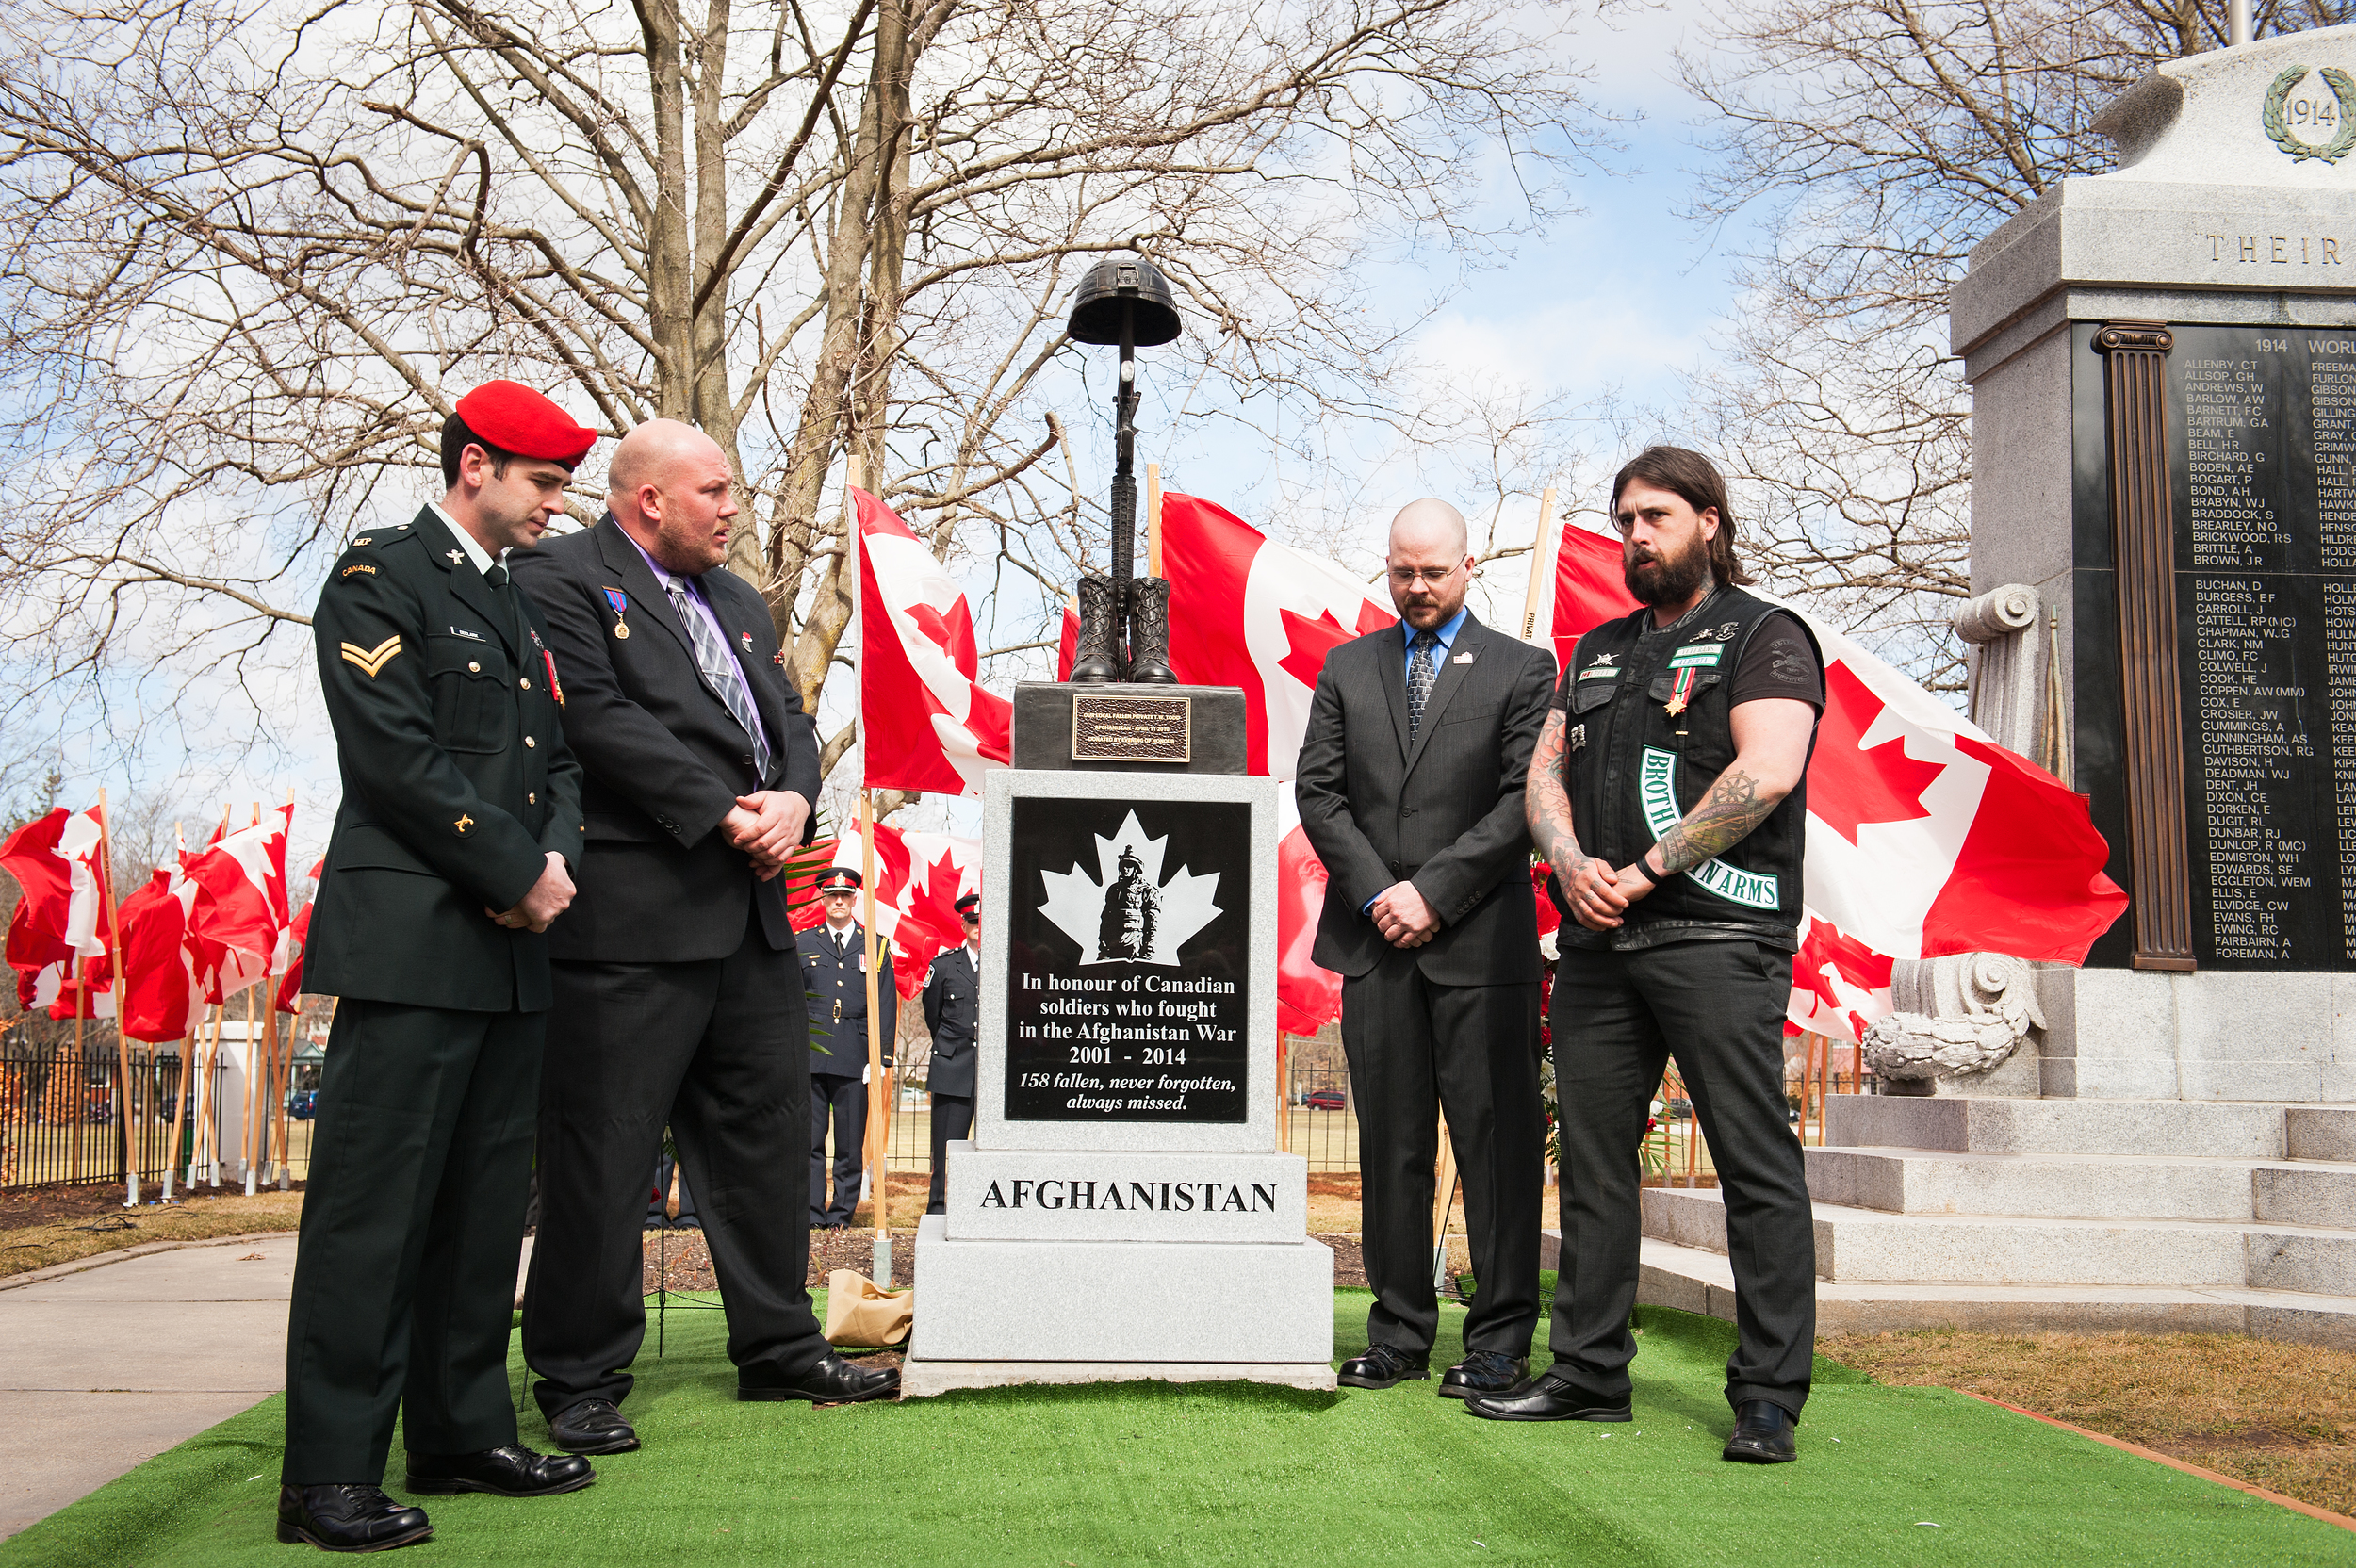 Evening Of Honour Members: Kevin DeClark, Jeremy Mac Knott (JMAC) and Stephen Smith Standing with Matt, who was in Afghanistan with Pte.Tyler W. Todd.